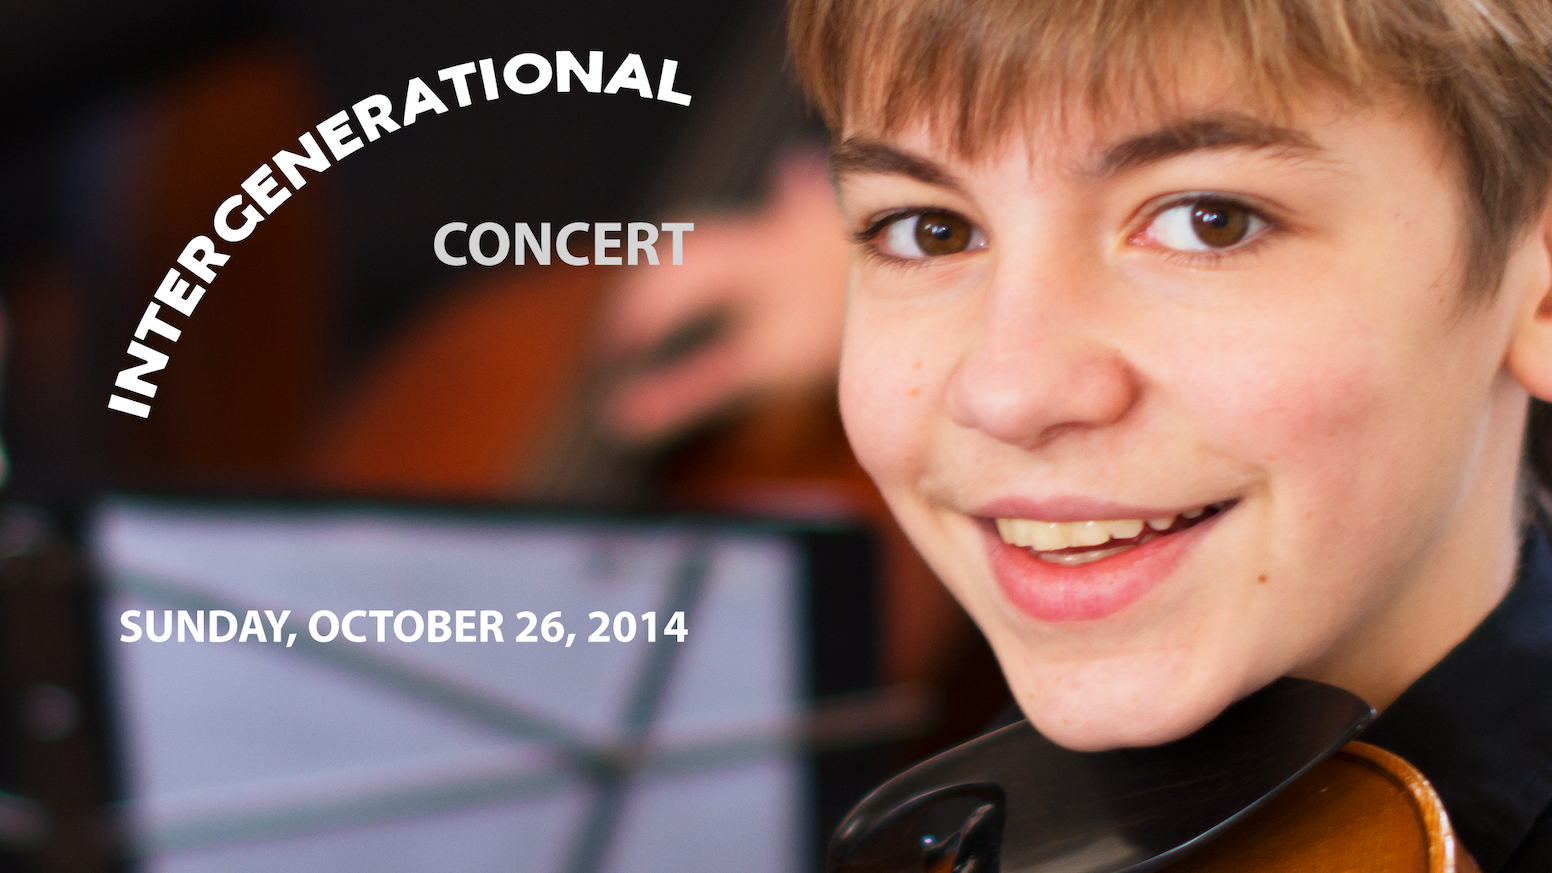 5Th Symphony beethoven's 5th symphony: an intergenerational experience